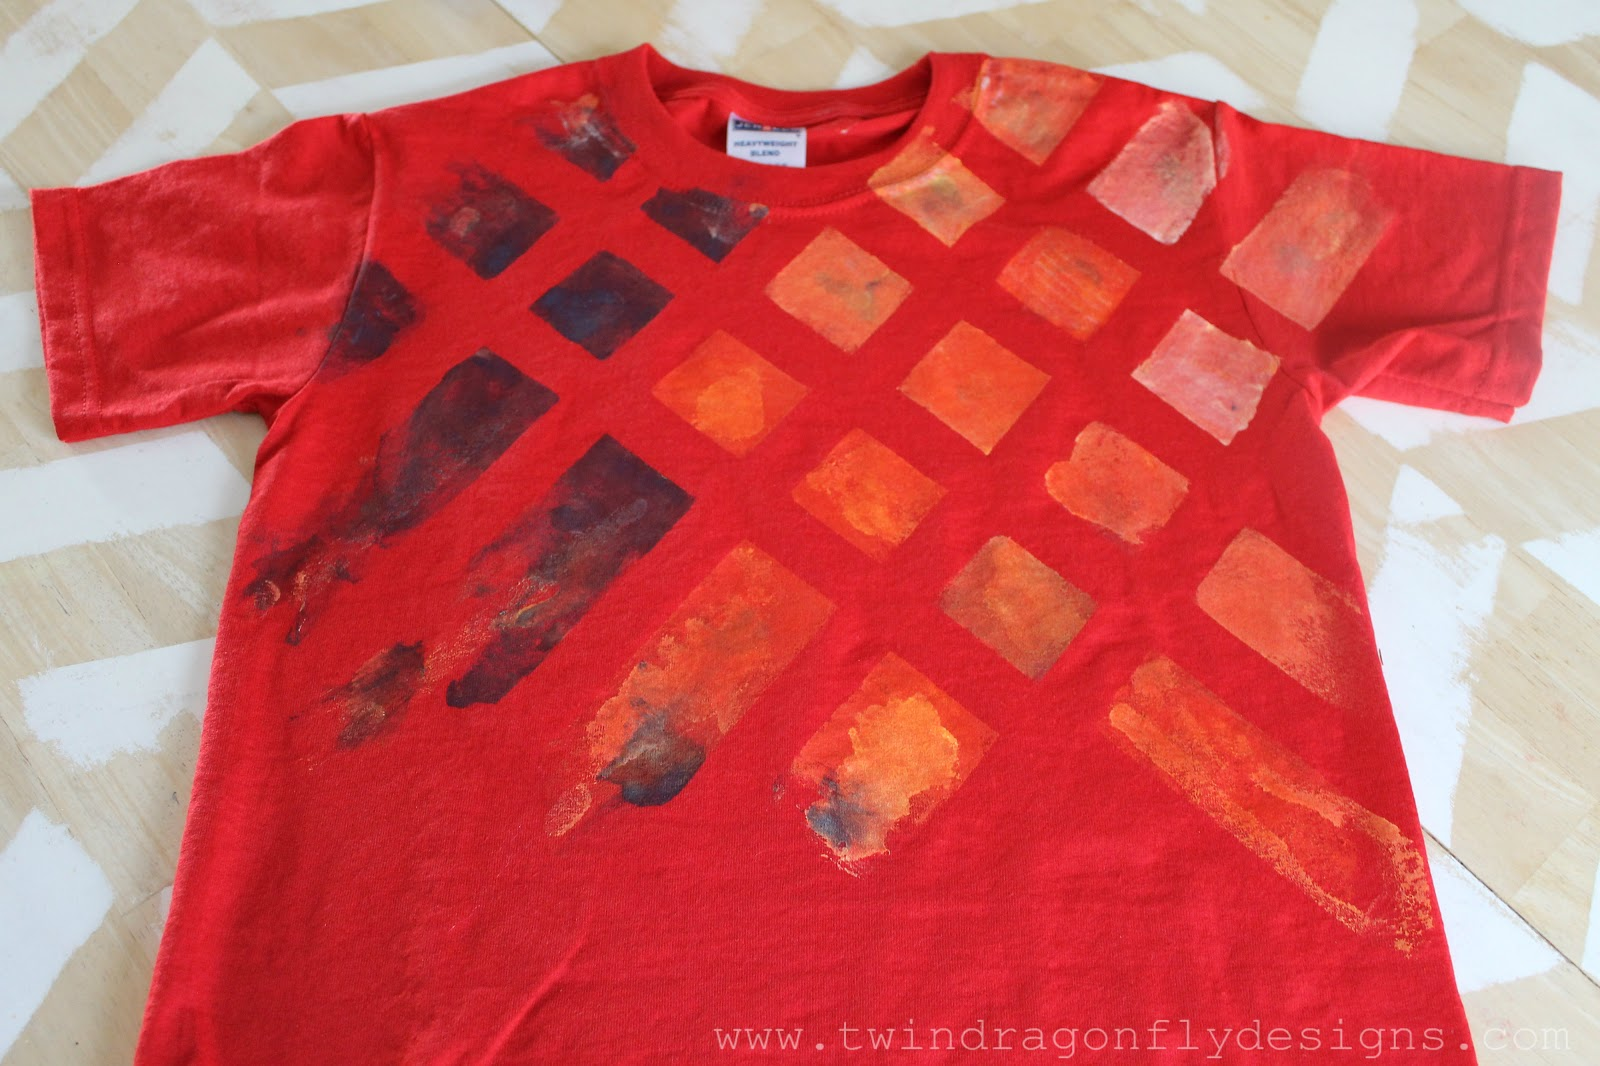 Simple painted t shirts dragonfly designs for How to paint on t shirt